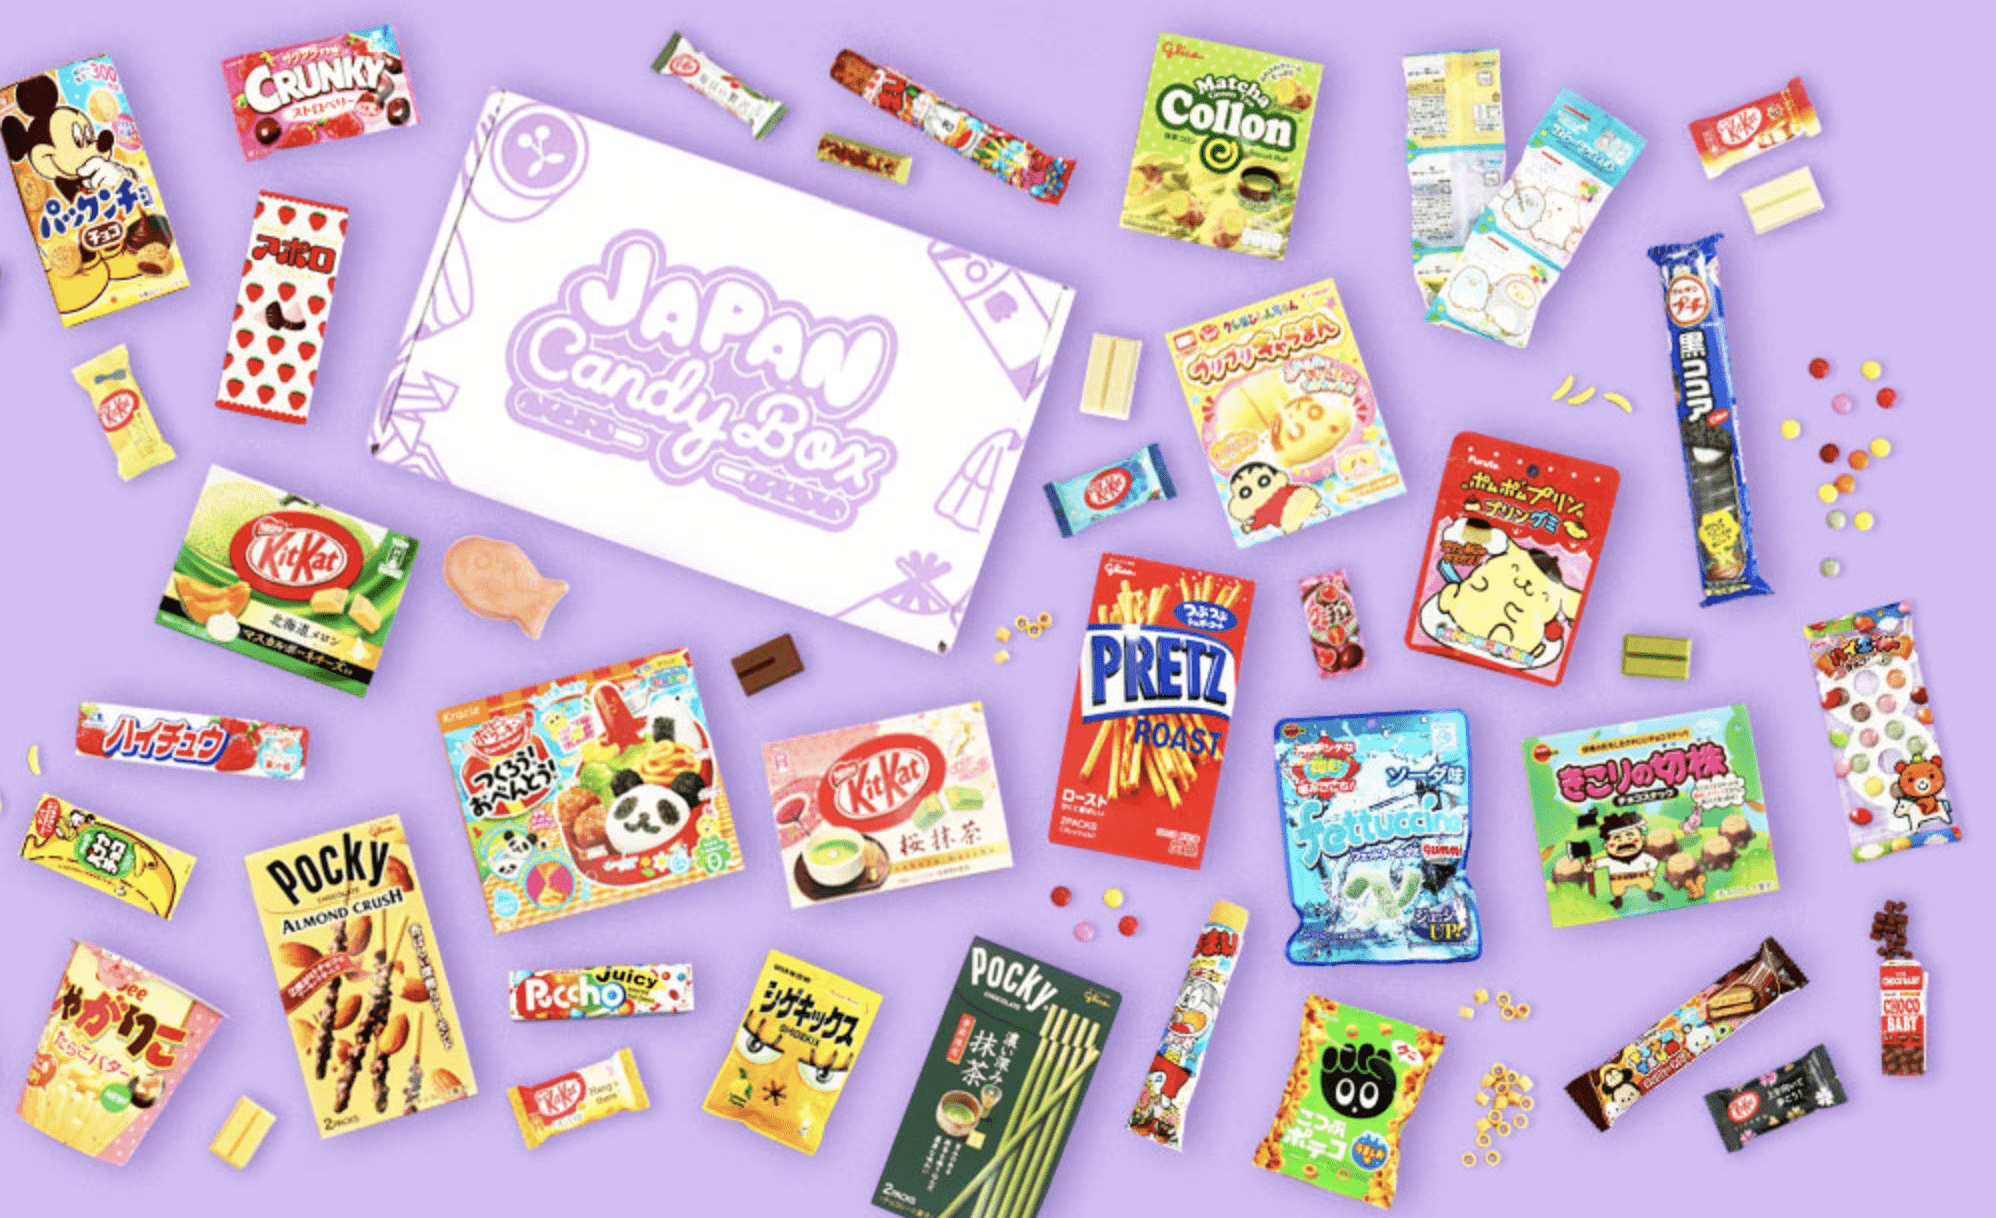 August 2018 Japan Candy Box Spoilers + $5 Coupon! - hello subscription